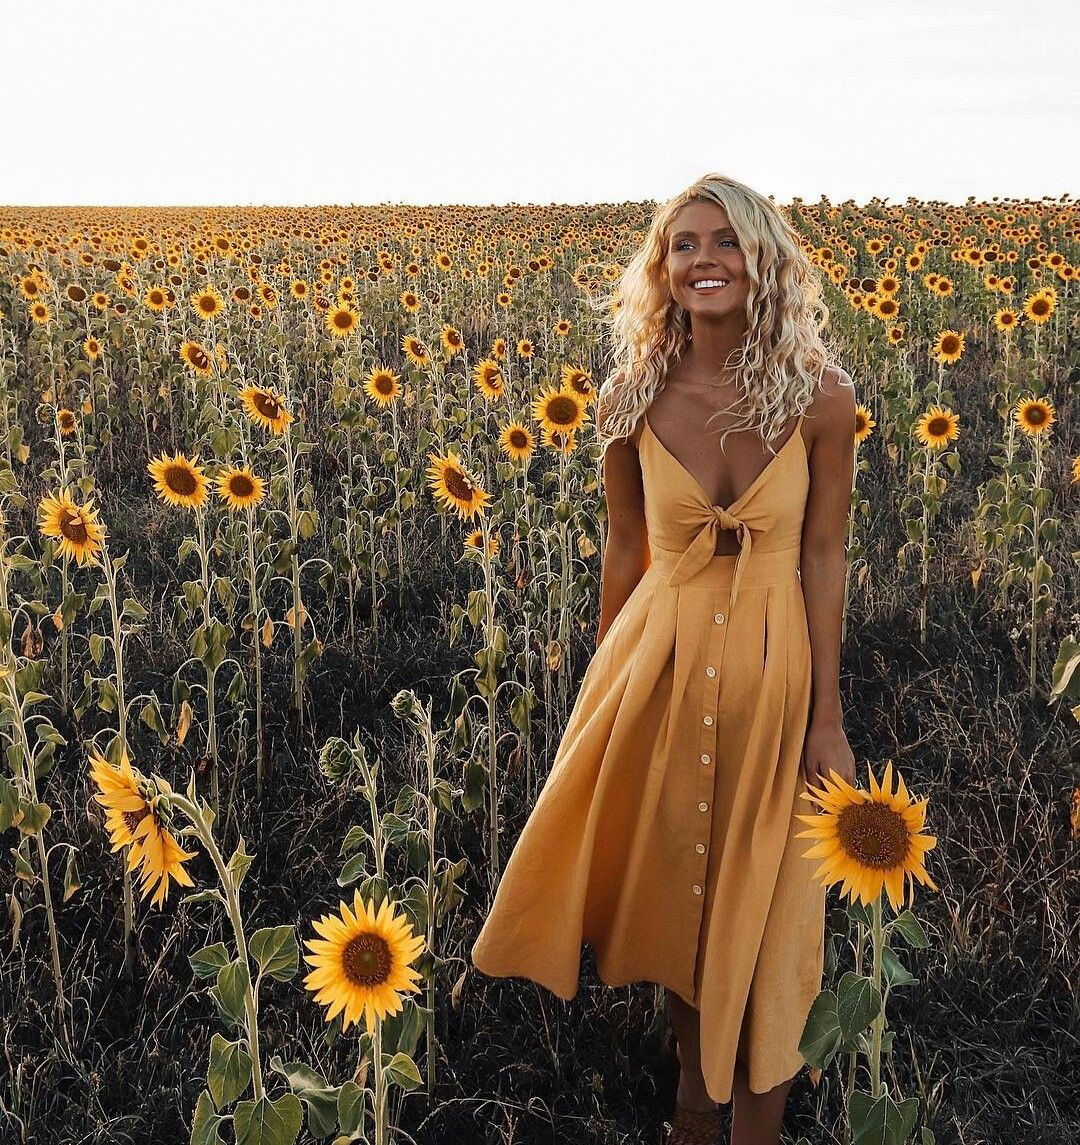 Sunflower field photoshoot | Picture Perfect | Fashion